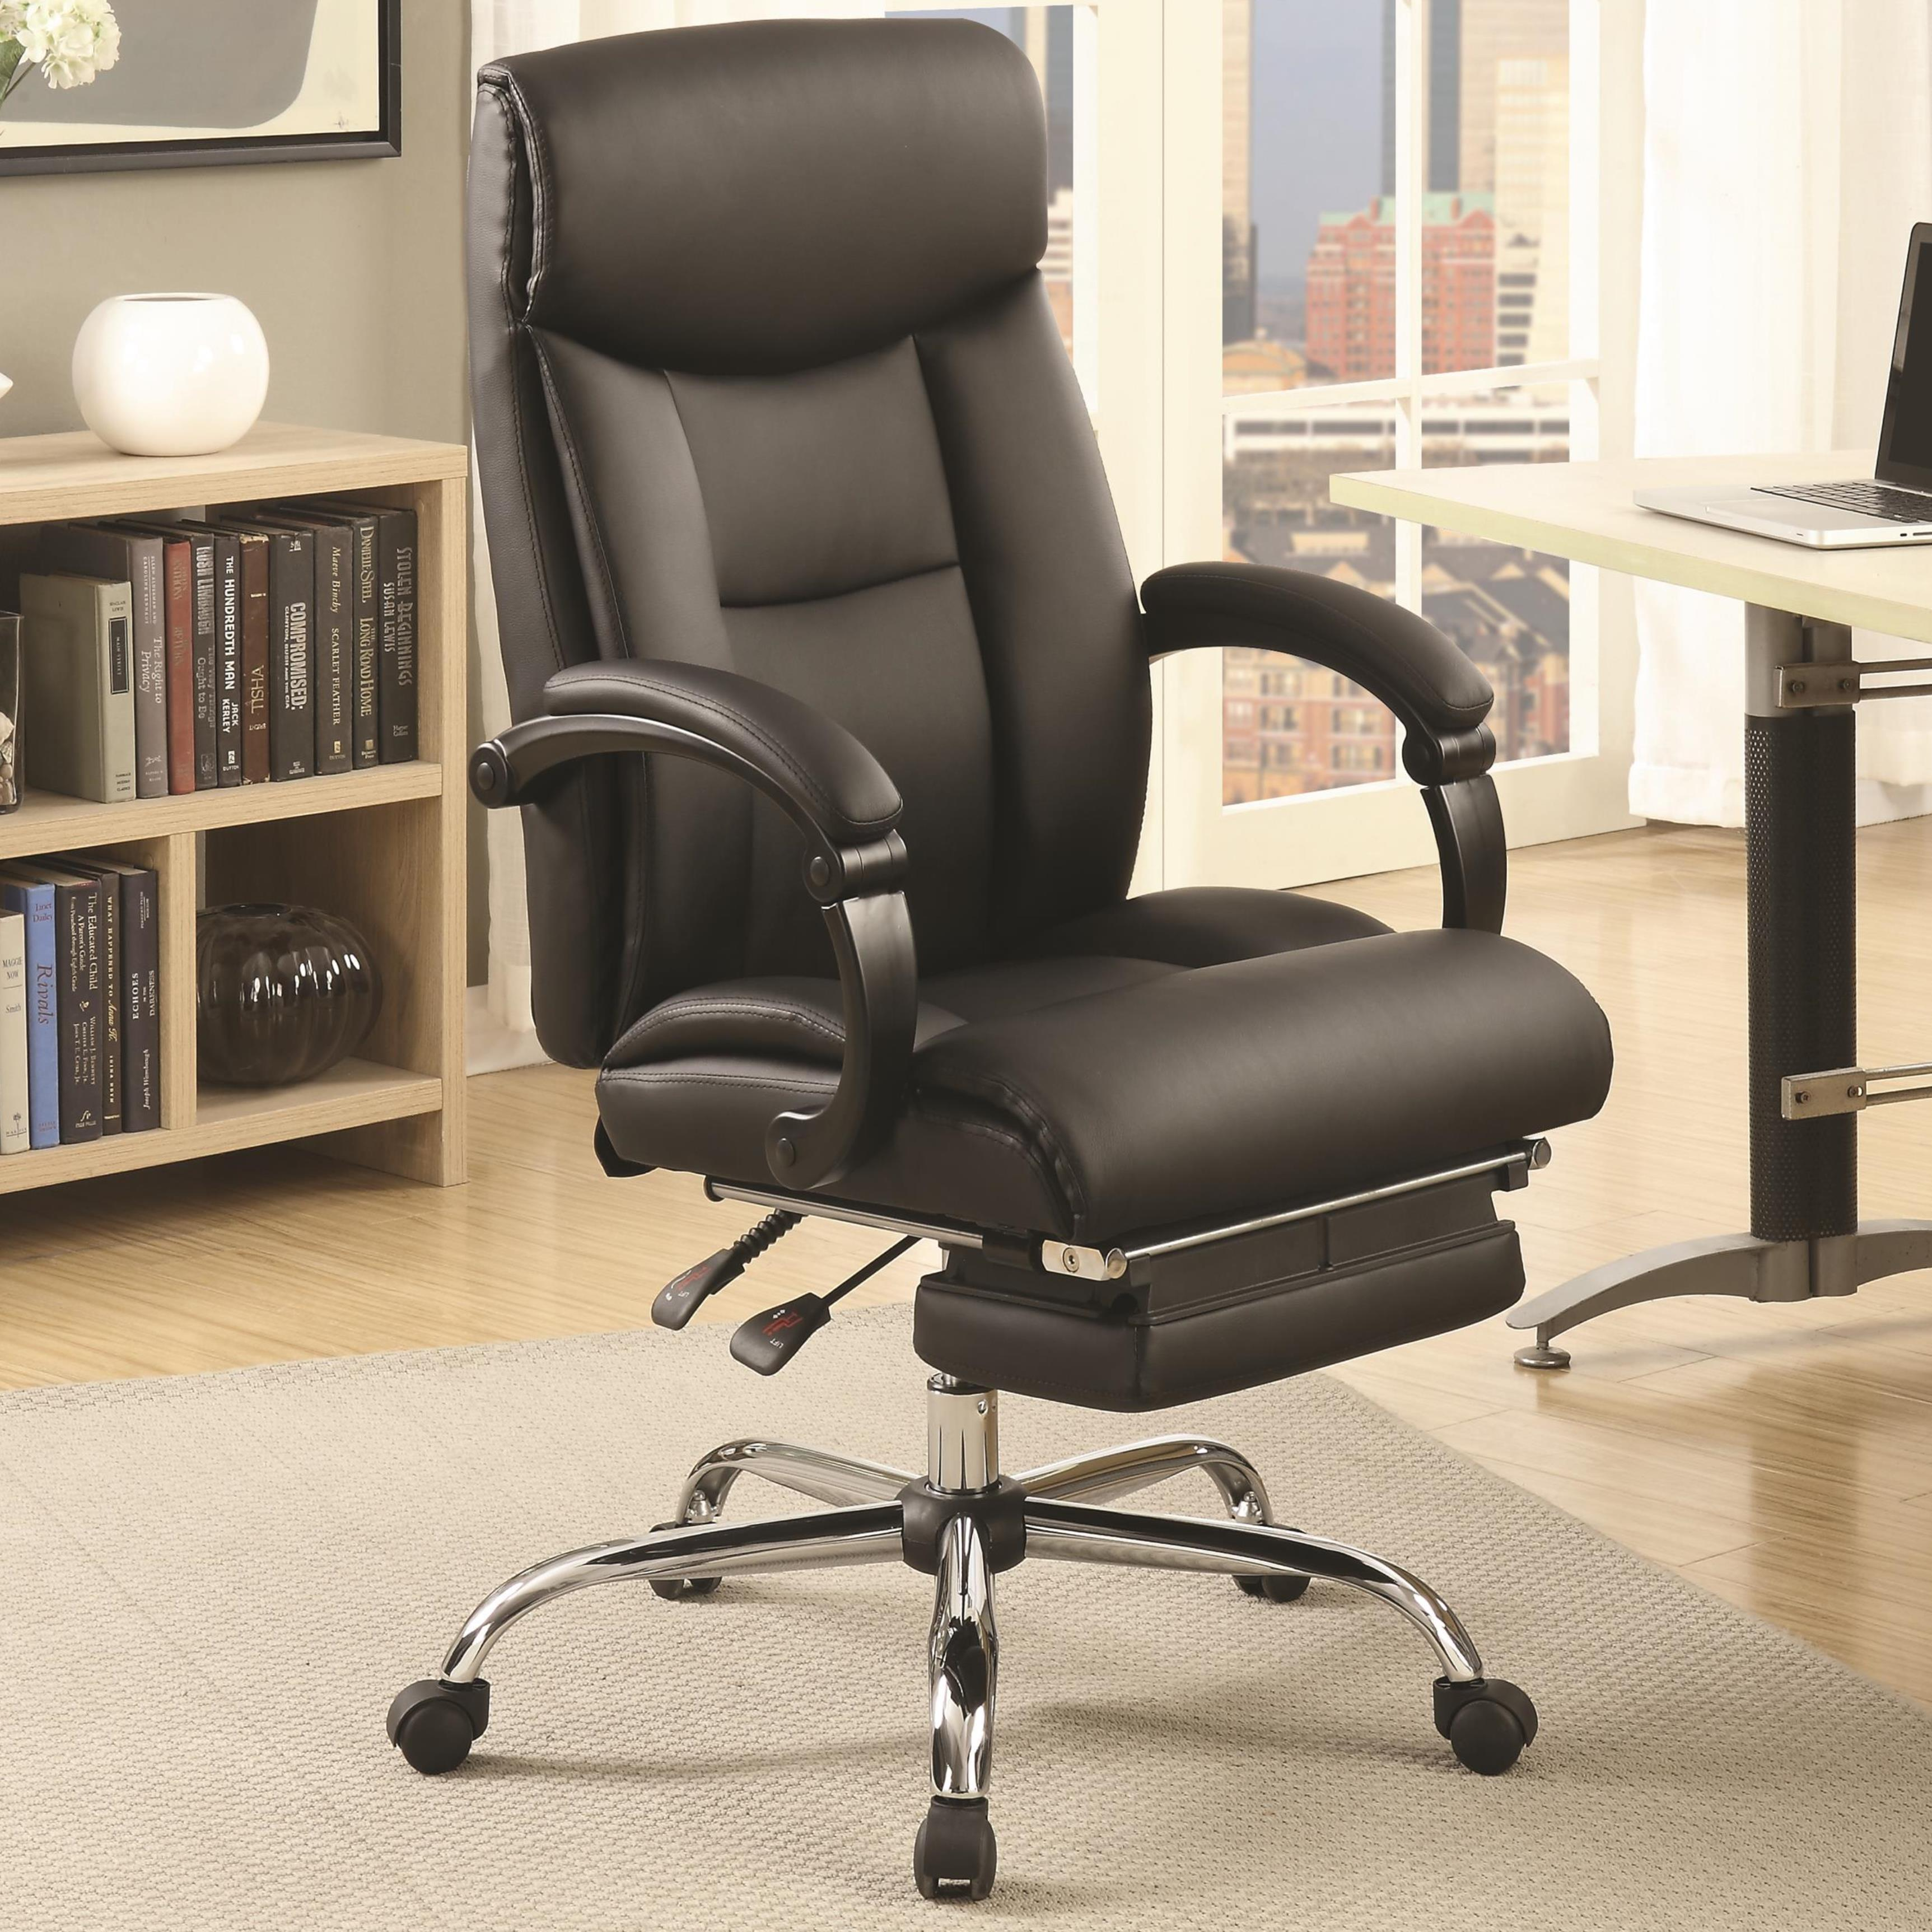 https://ak1.ostkcdn.com//images/products/12222847/Executive-Adjustable-Reclining-Office-Chair-with-Incremental-Footrest-64a51e8b-58e3-4c32-87ac-4e1ad01105bf.jpg